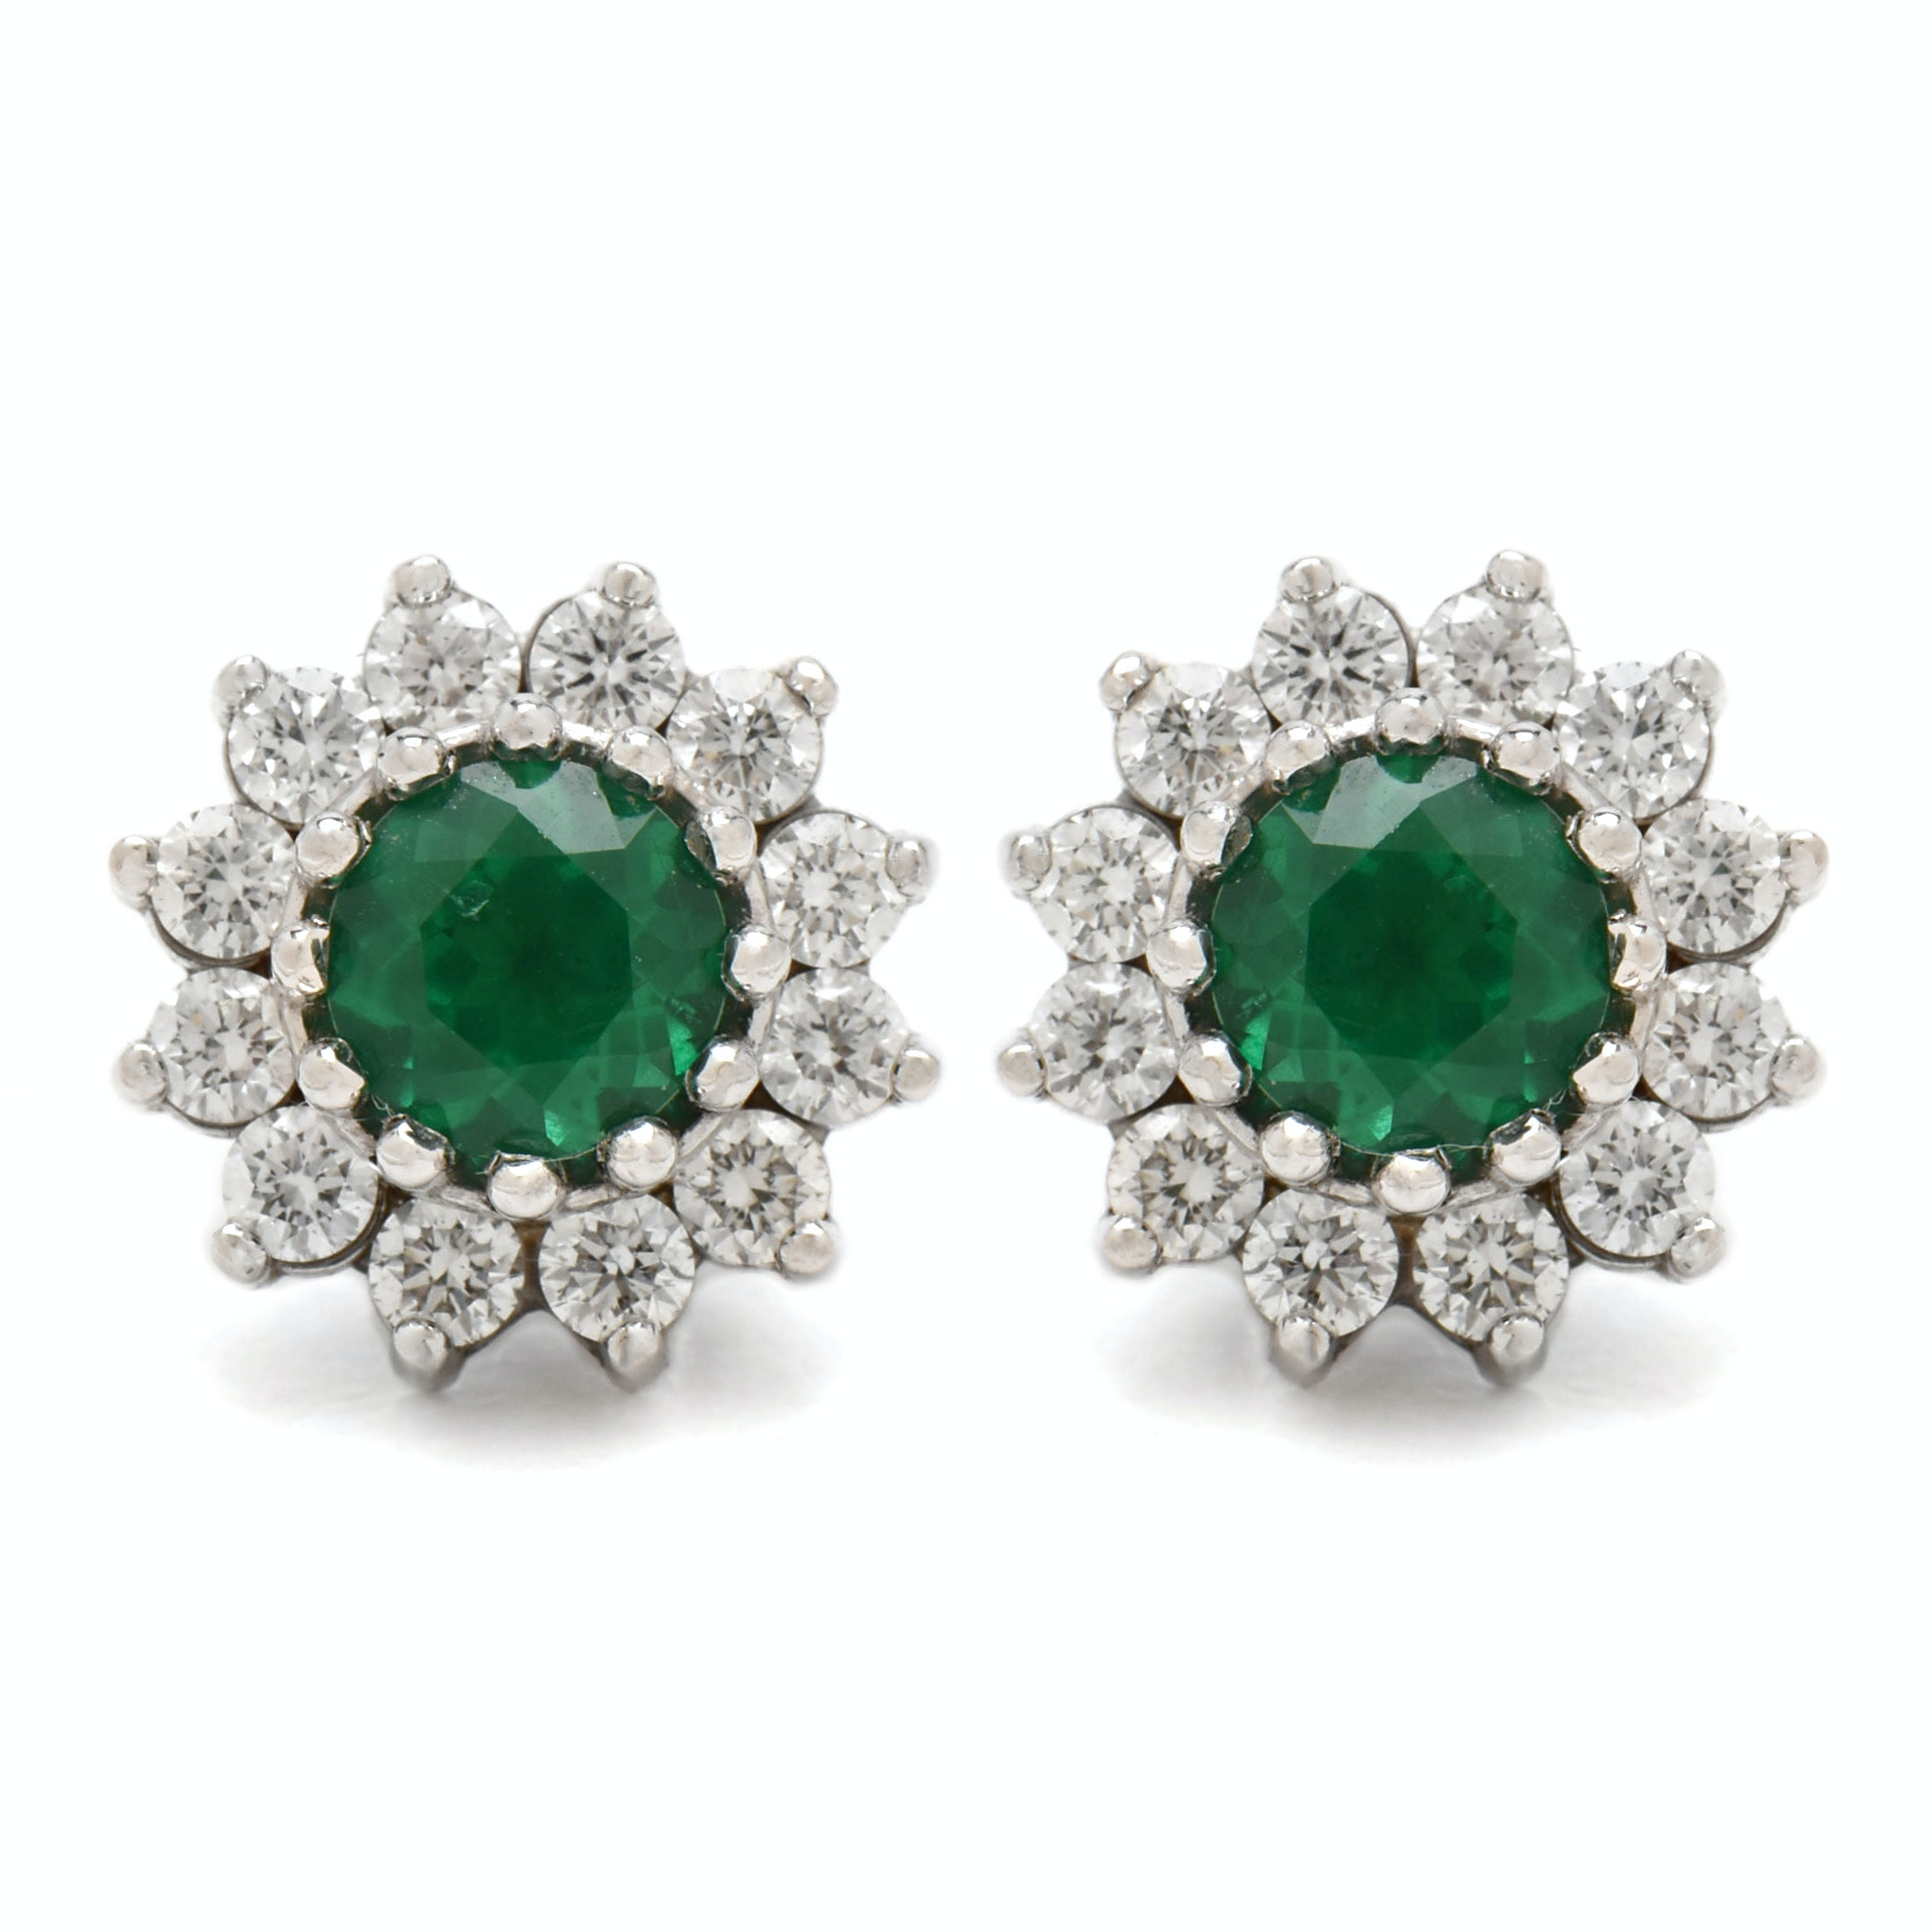 14K White Gold Emerald and Diamond Earrings with AGL Prestige Report